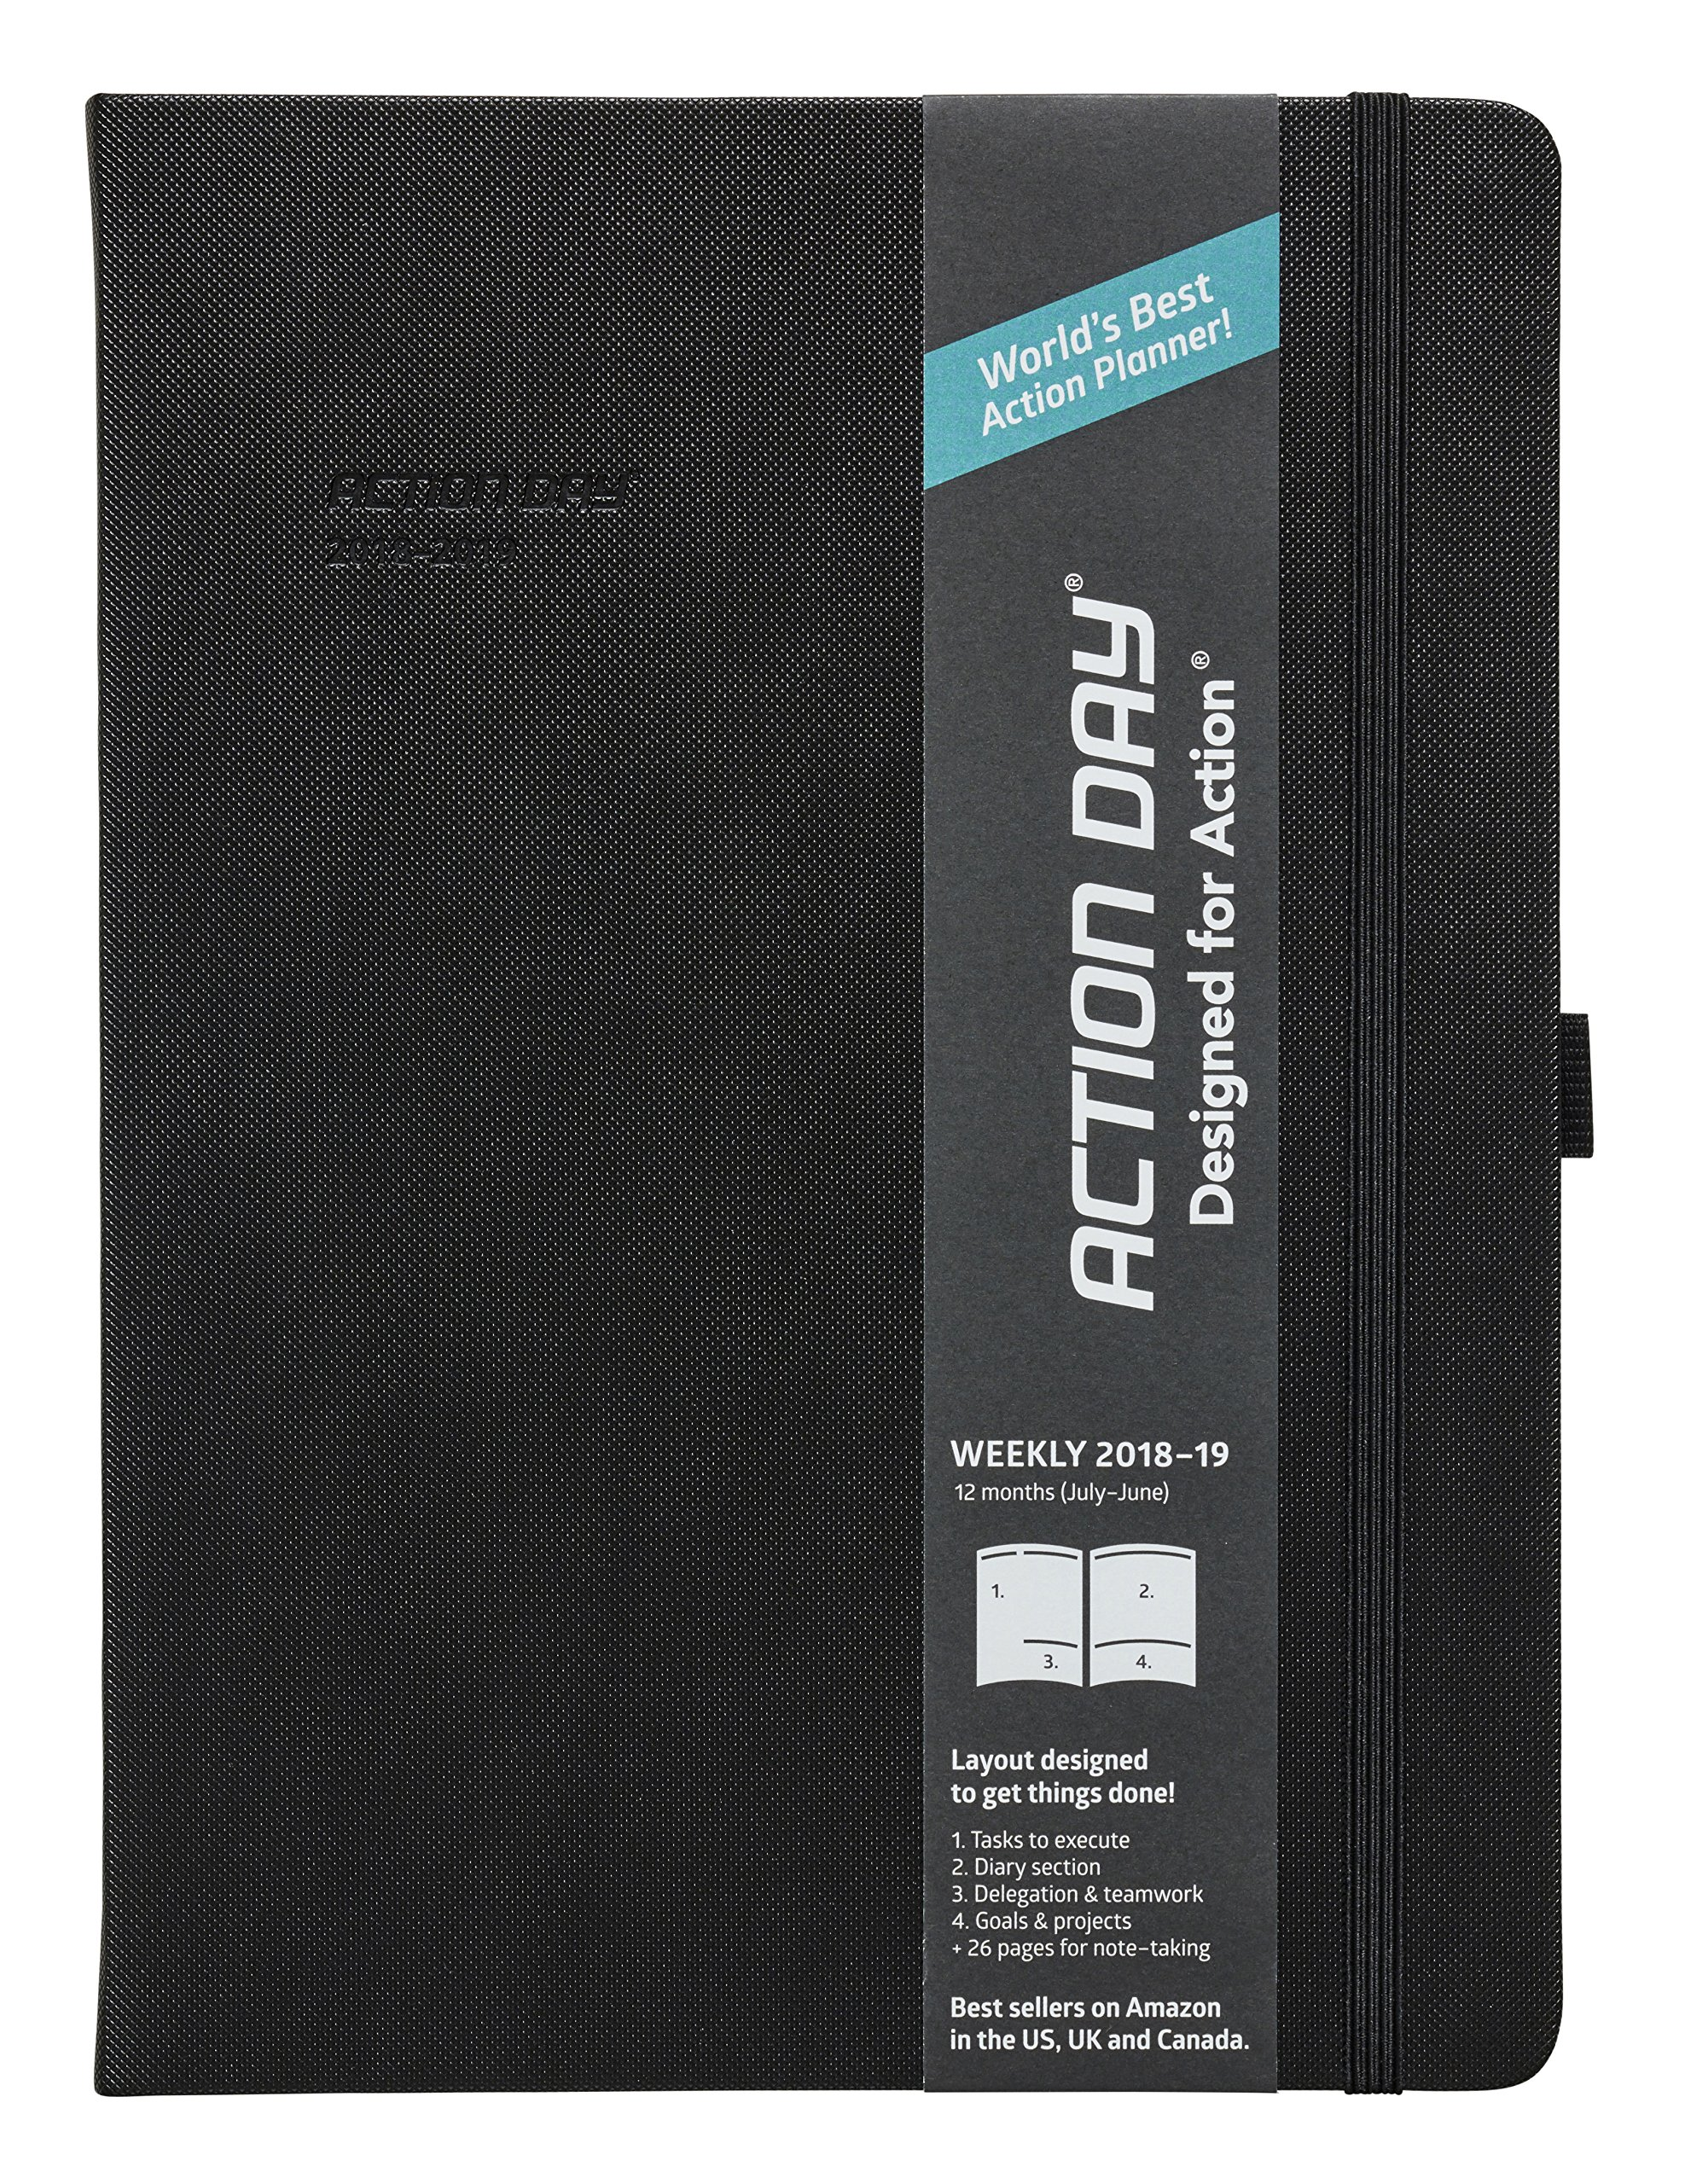 Action Day Academic Planner 2018-2019 - World's Best Goals & Action Layout That Gets Things Done & Increase Productivity - Daily, Weekly, Monthly, Yearly Organizer (8x11,Thread-Bound,Black)